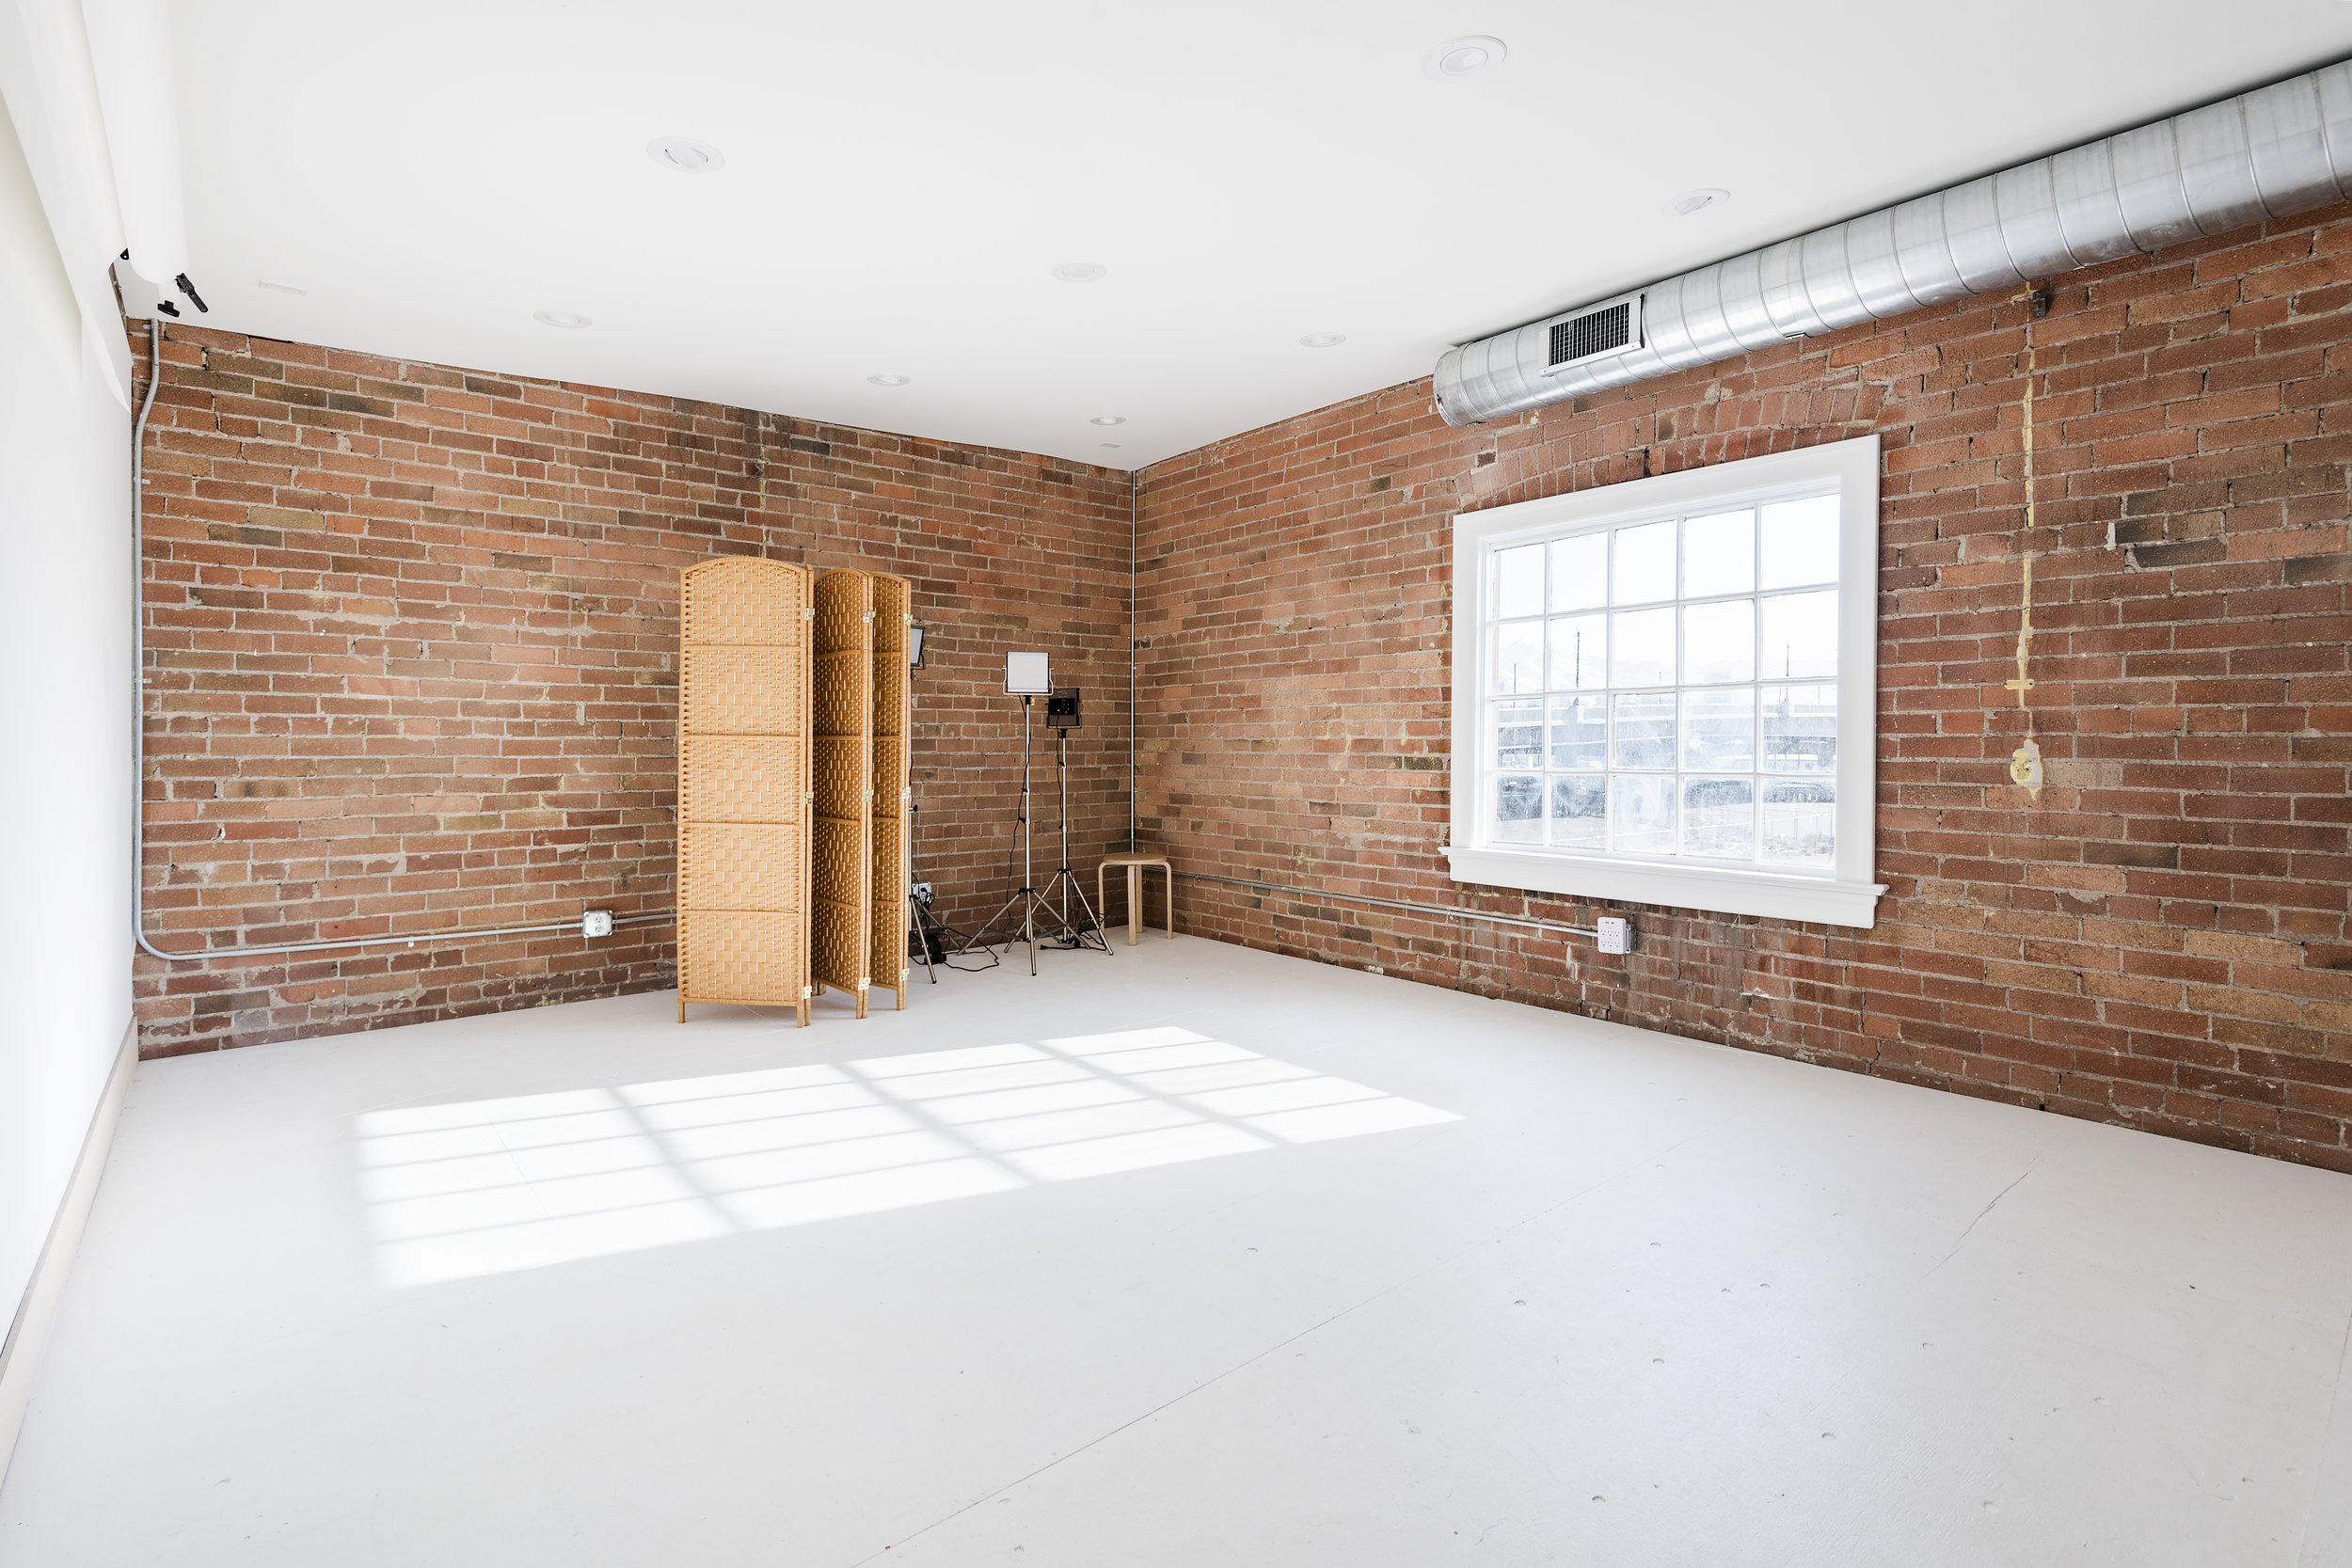 photography studio - the natural light illuminates the exposed brick & white walls of the foundry slc.We offer studio lighting and an assortment of colored paper backdrops to best accommodate your photography needs.